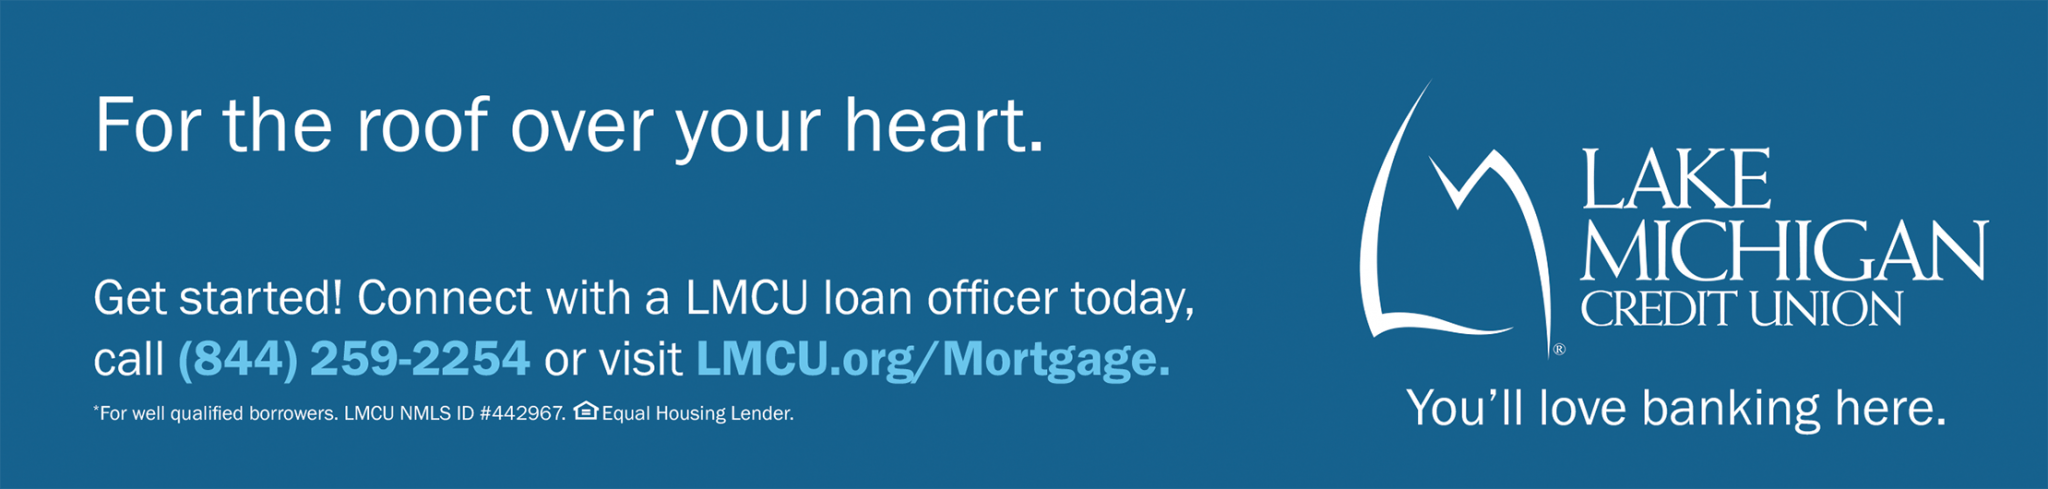 Get started! Connect with a LMCU loan officer today.